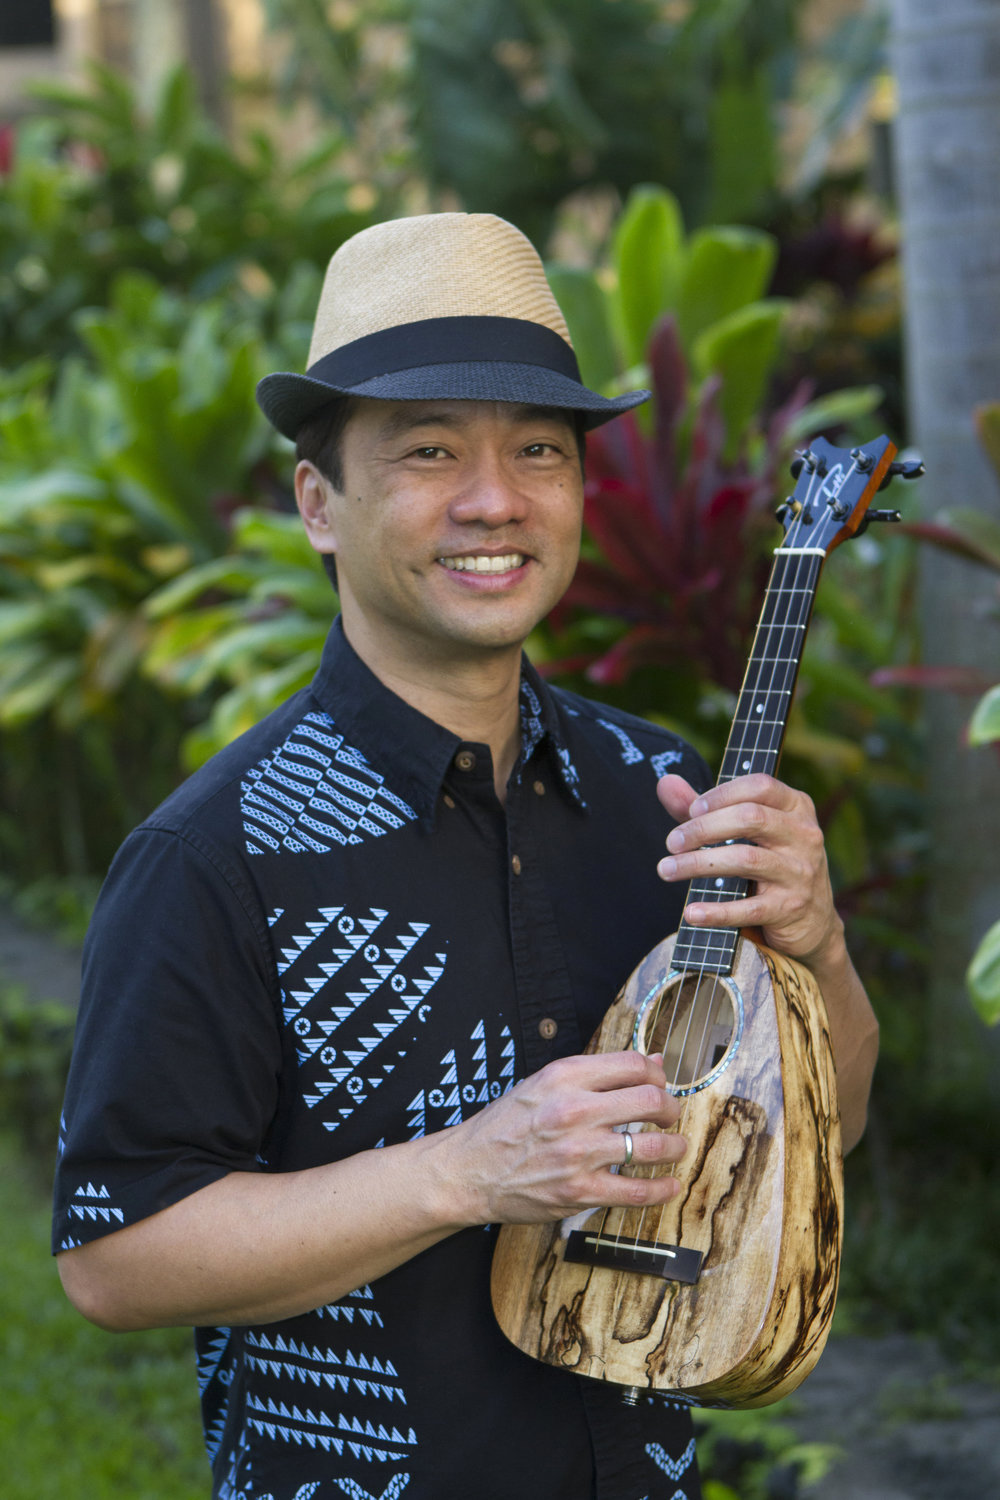 Daniel Ho with the Tiny Tenor 'Ukulele